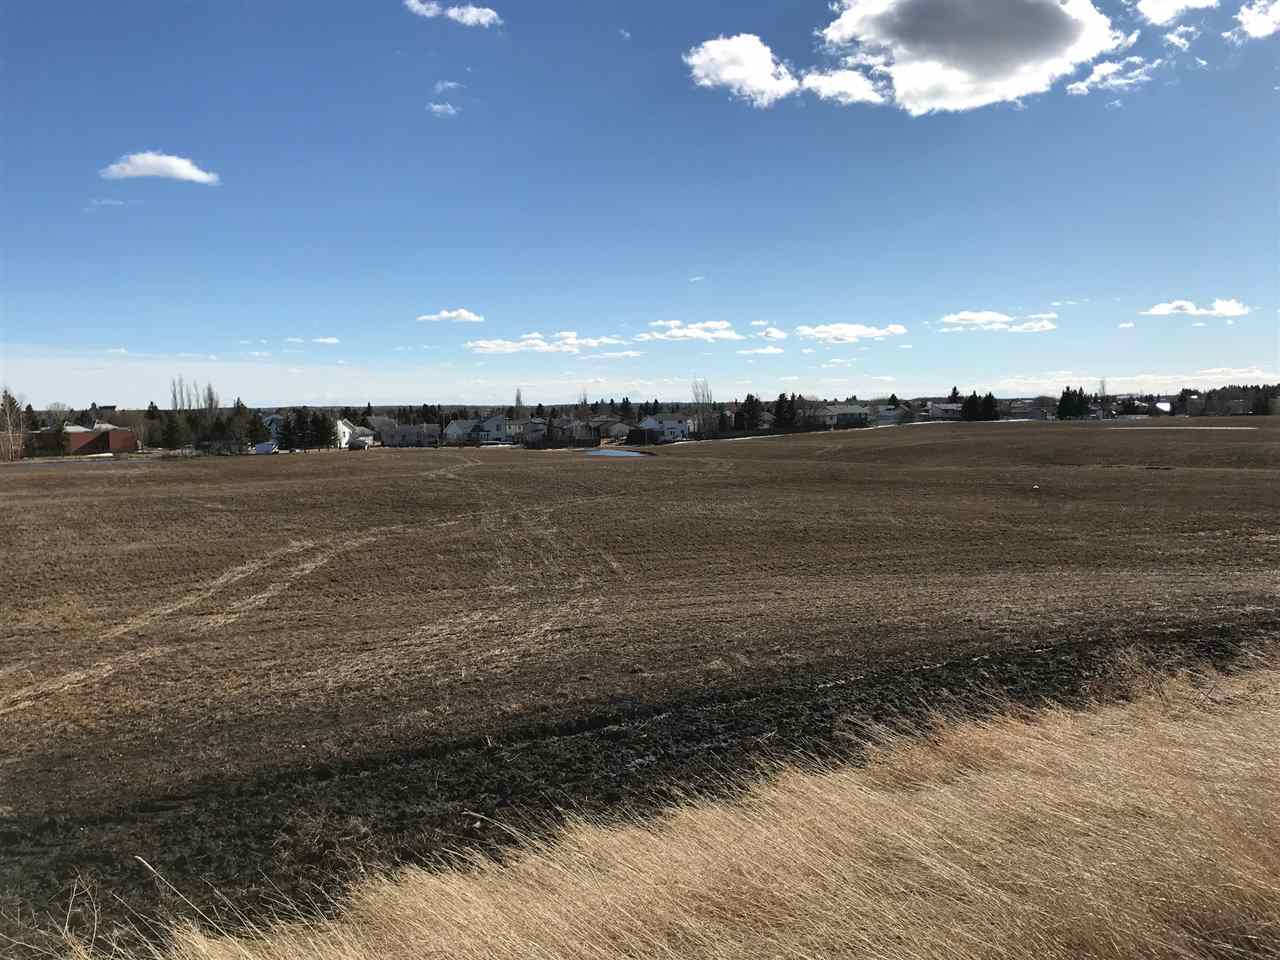 Developers wanted!  Excellent opportunity in the town of Barrhead to develop 40 acres of land.  22 subdivided lots, 1 acre and up.  Power, gas and water at the property.  Sewer needs to be brought from nearby residential subdivision.  Local RCMP, Cal Tire and Ramada.  Express interest in new developments, so is the Seller to build.